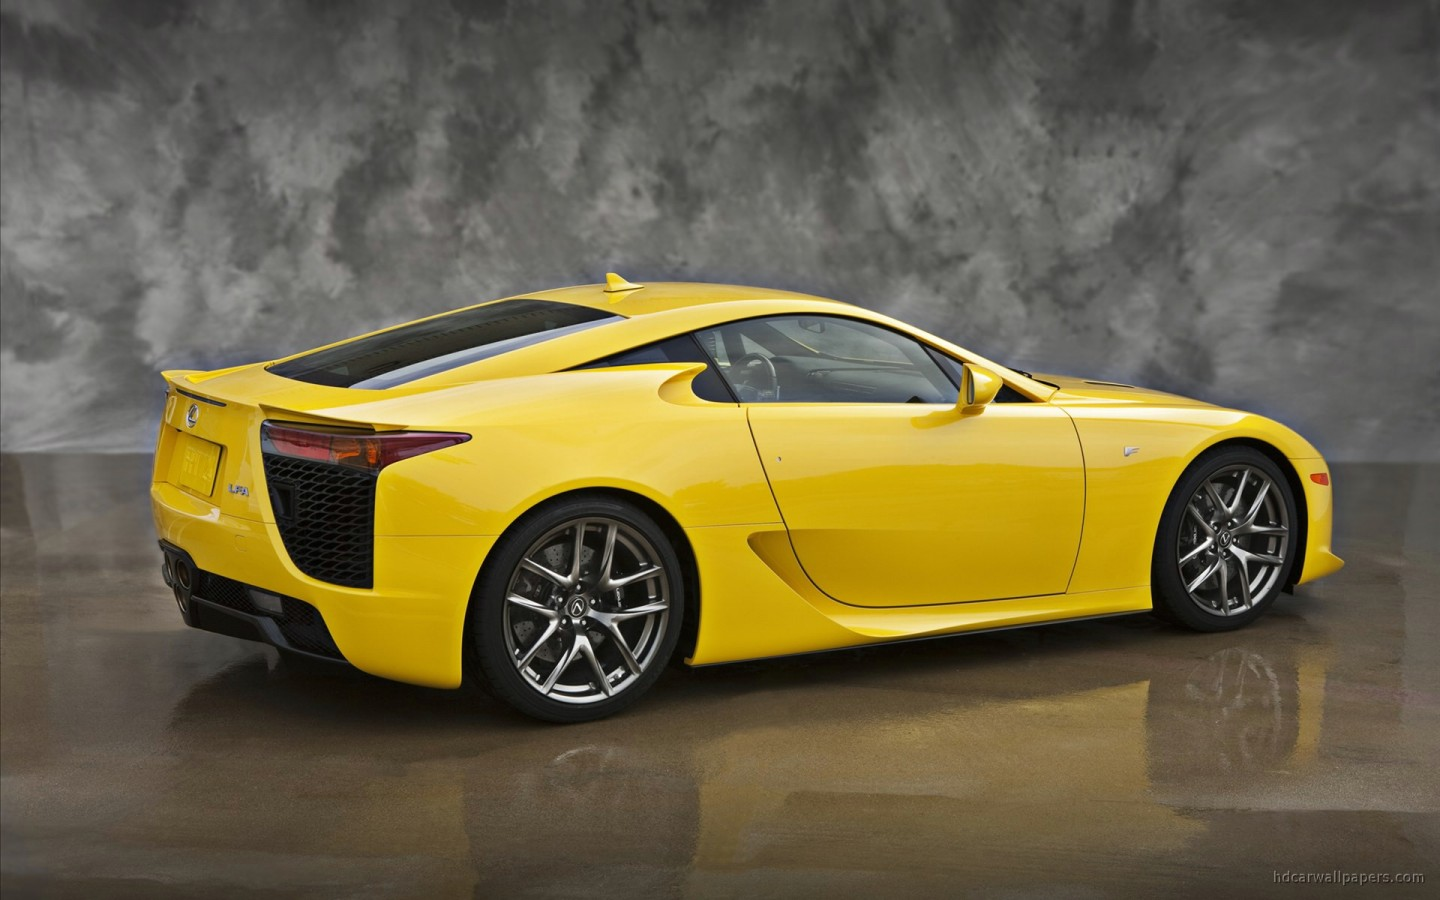 Nfs Carbon Cars Wallpaper 2012 Lexus Lfa 2 Wallpaper Hd Car Wallpapers Id 1821